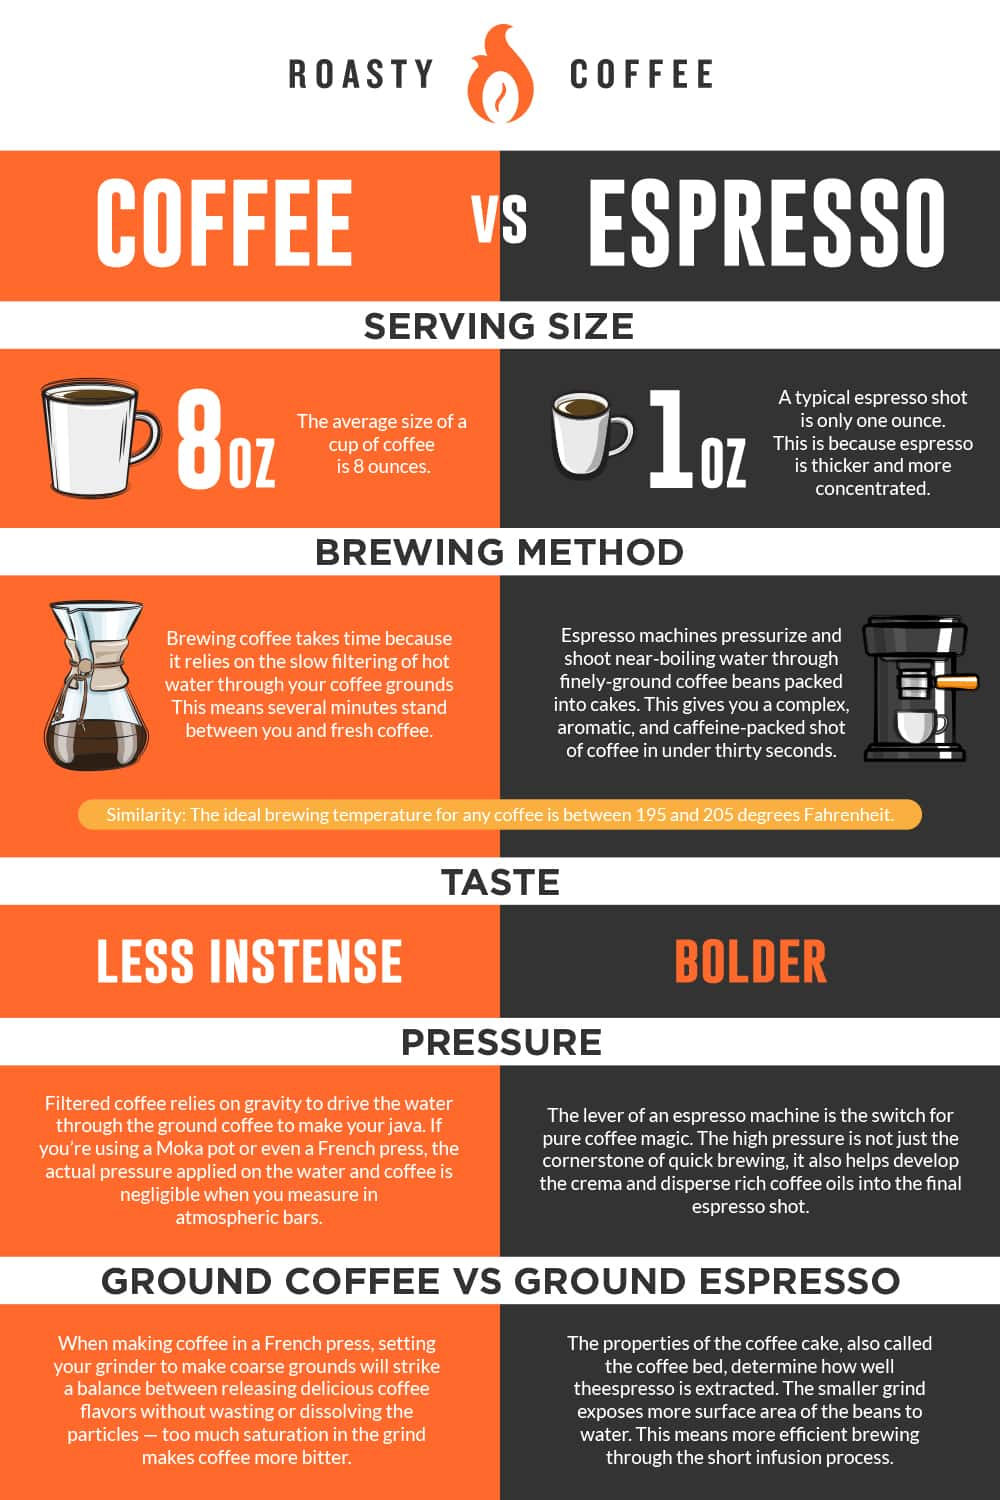 Coffee vs Espresso Infographic